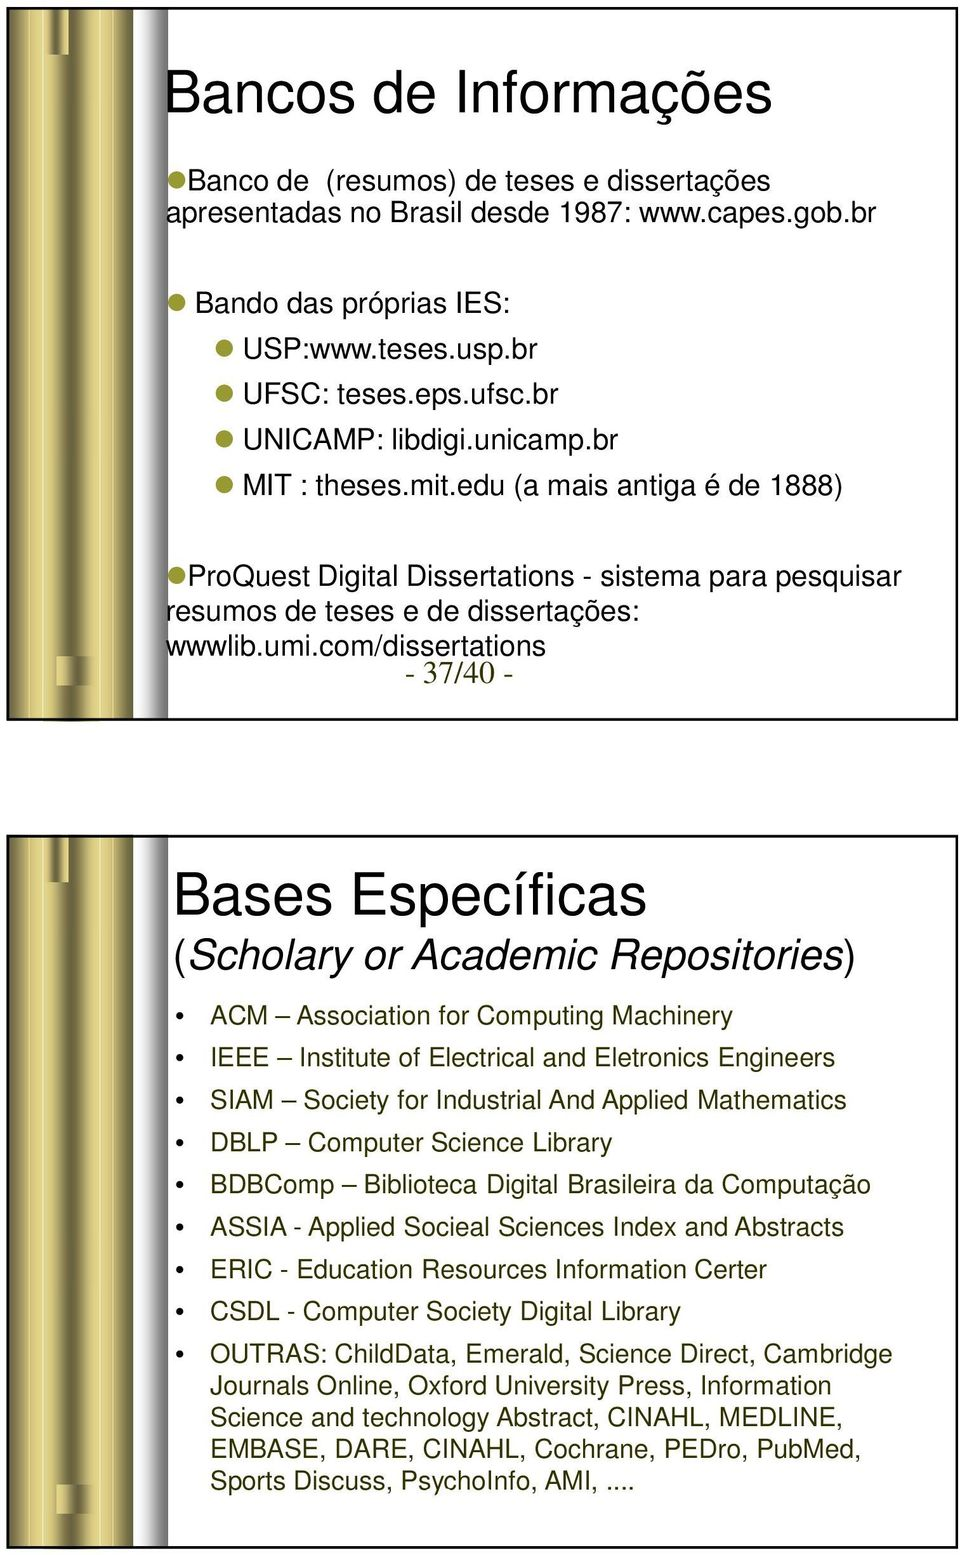 com/dissertations - 37/40 - Bases Específicas (Scholary or Academic Repositories) ACM Association for Computing Machinery IEEE Institute of Electrical and Eletronics Engineers SIAM Society for